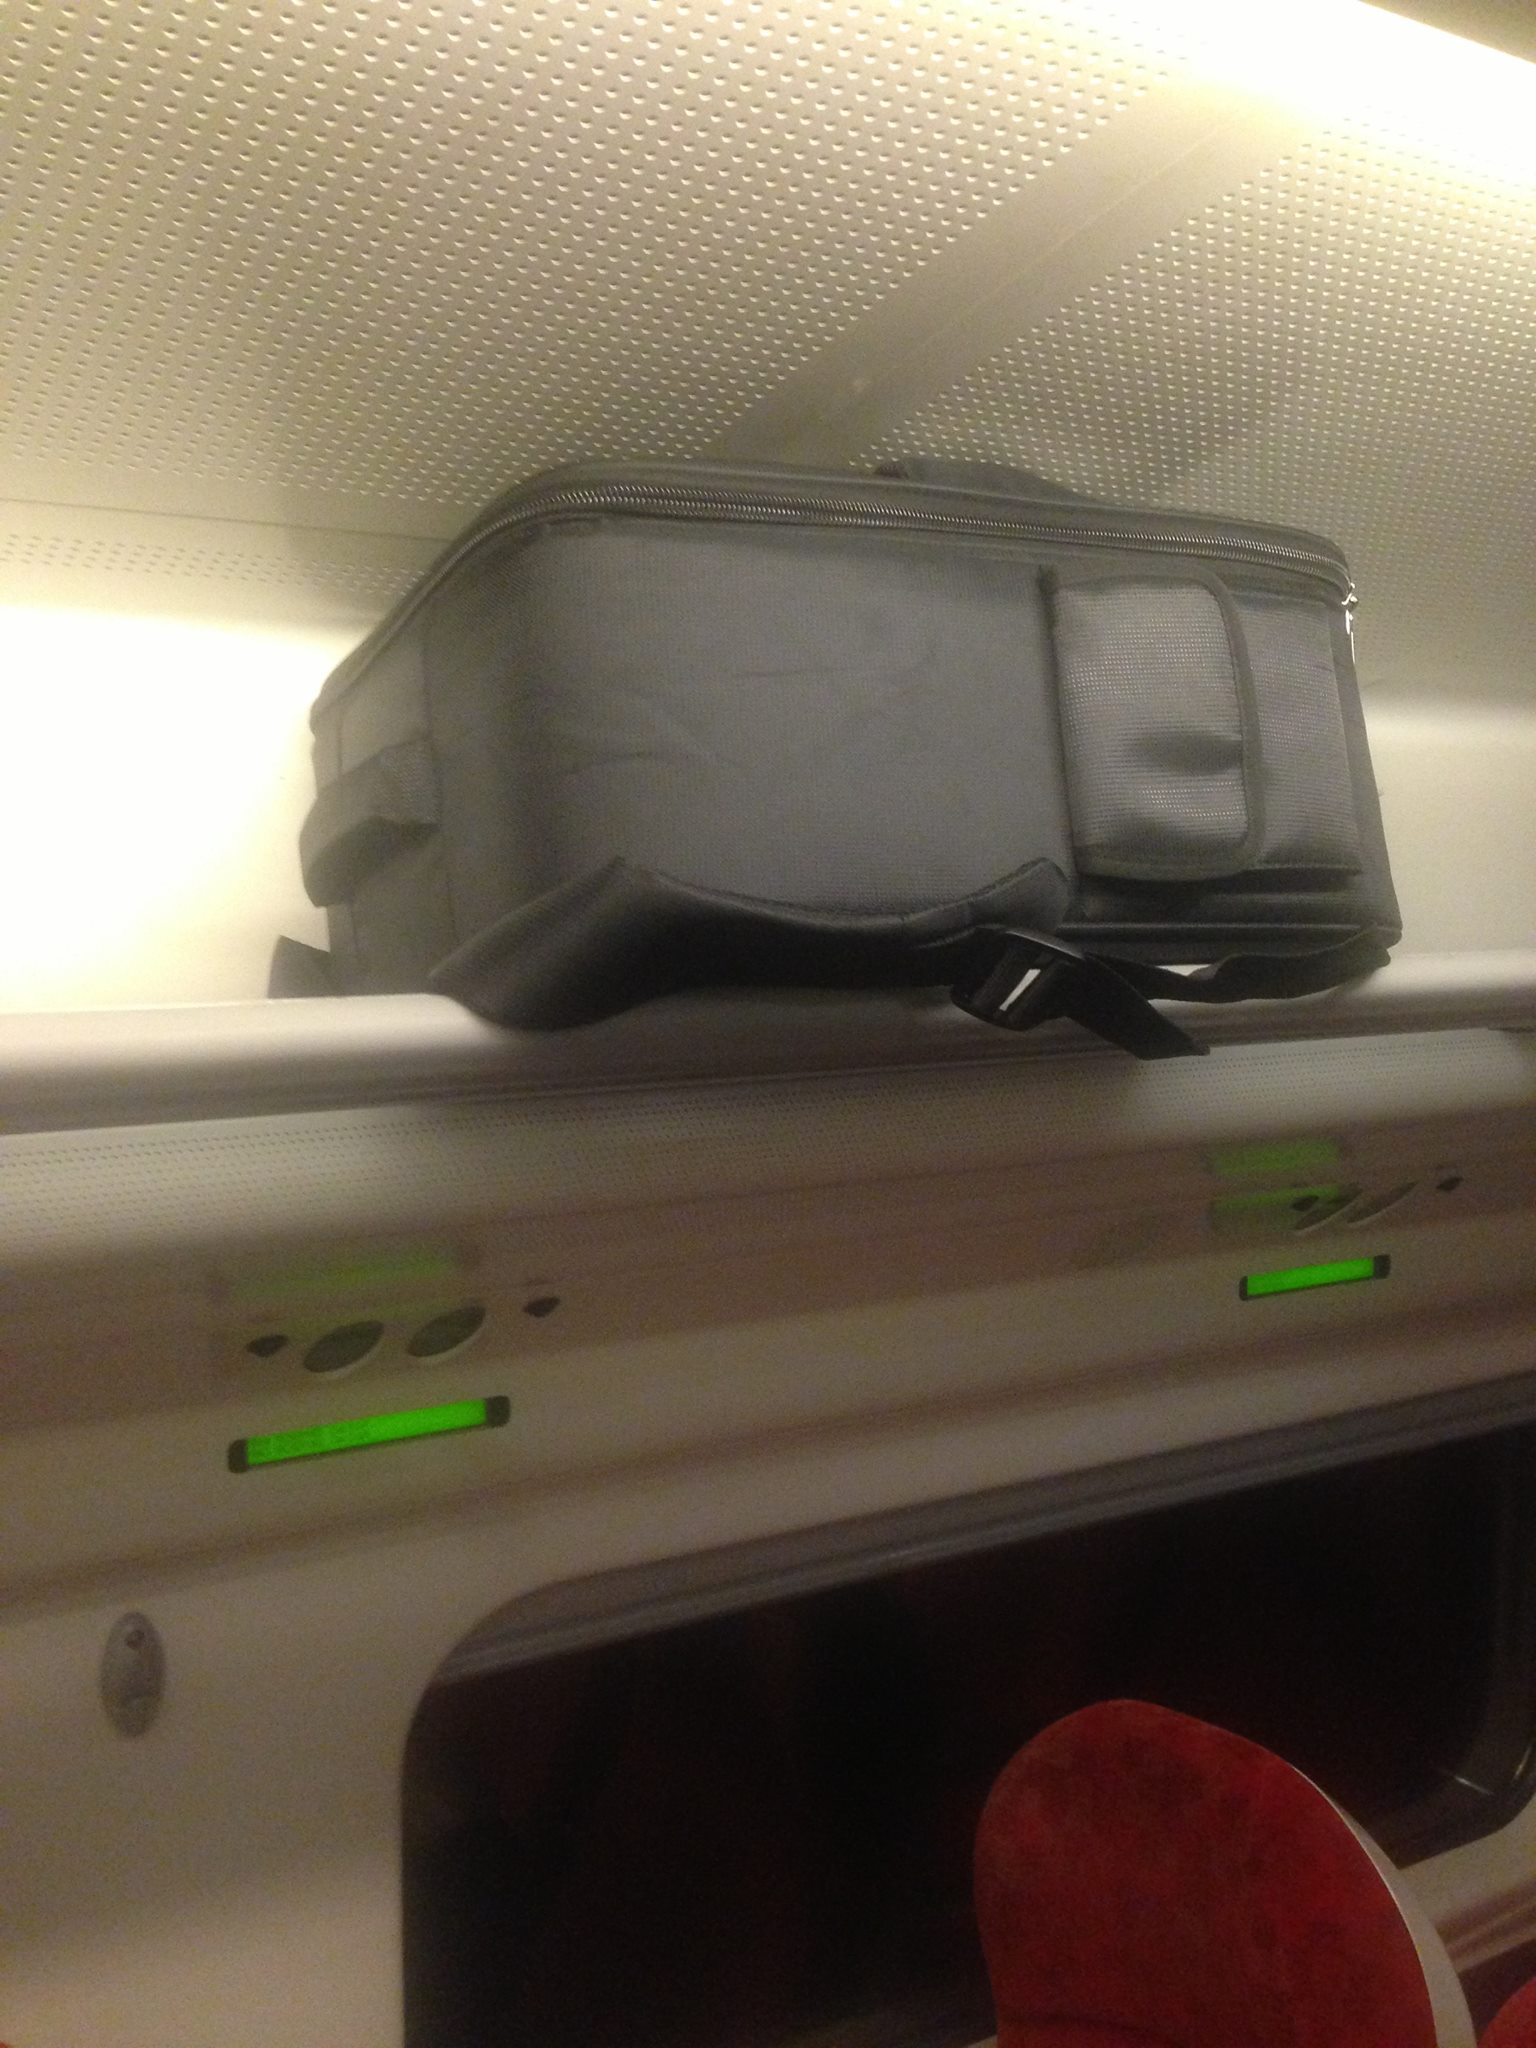 Drone in backpack on the train